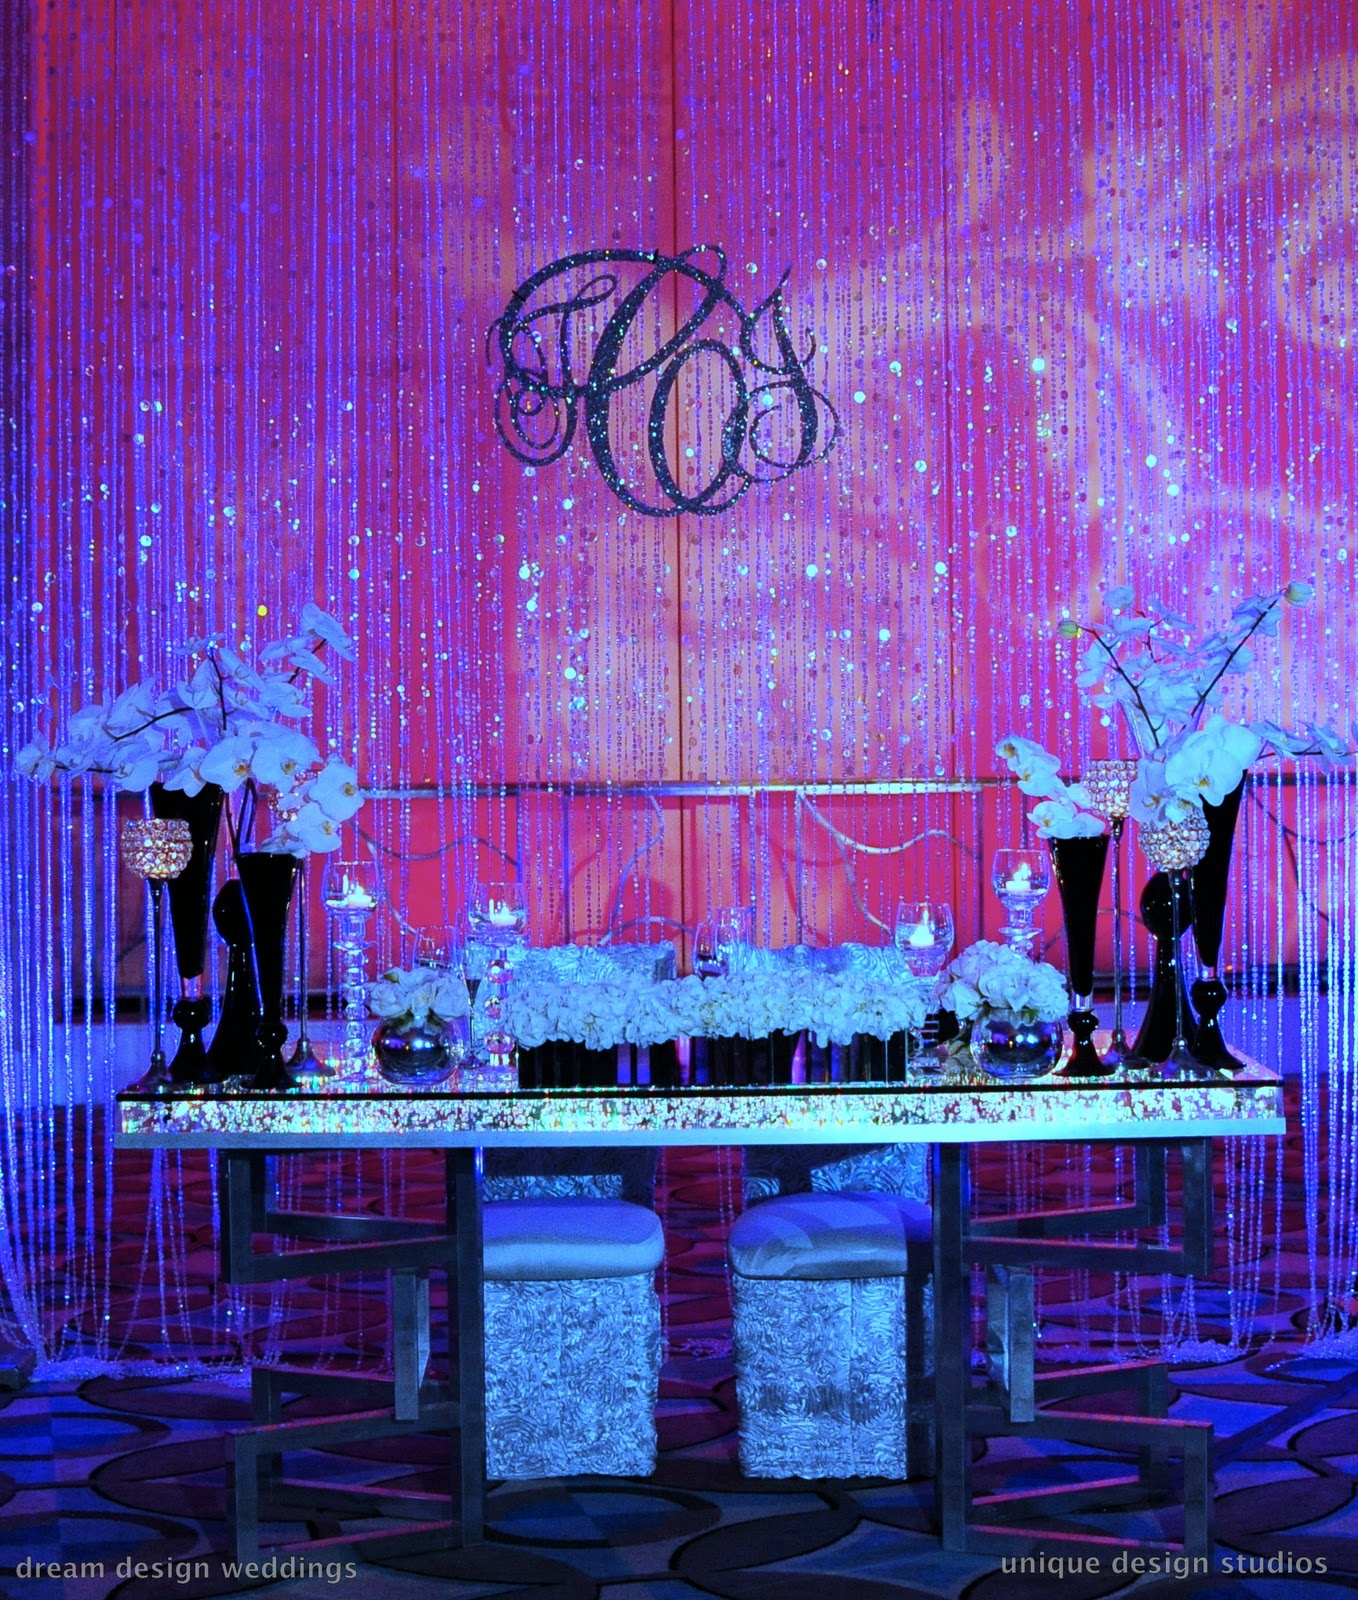 Tiffany cook events saturday sweetheart table inspiration for Table design for wedding